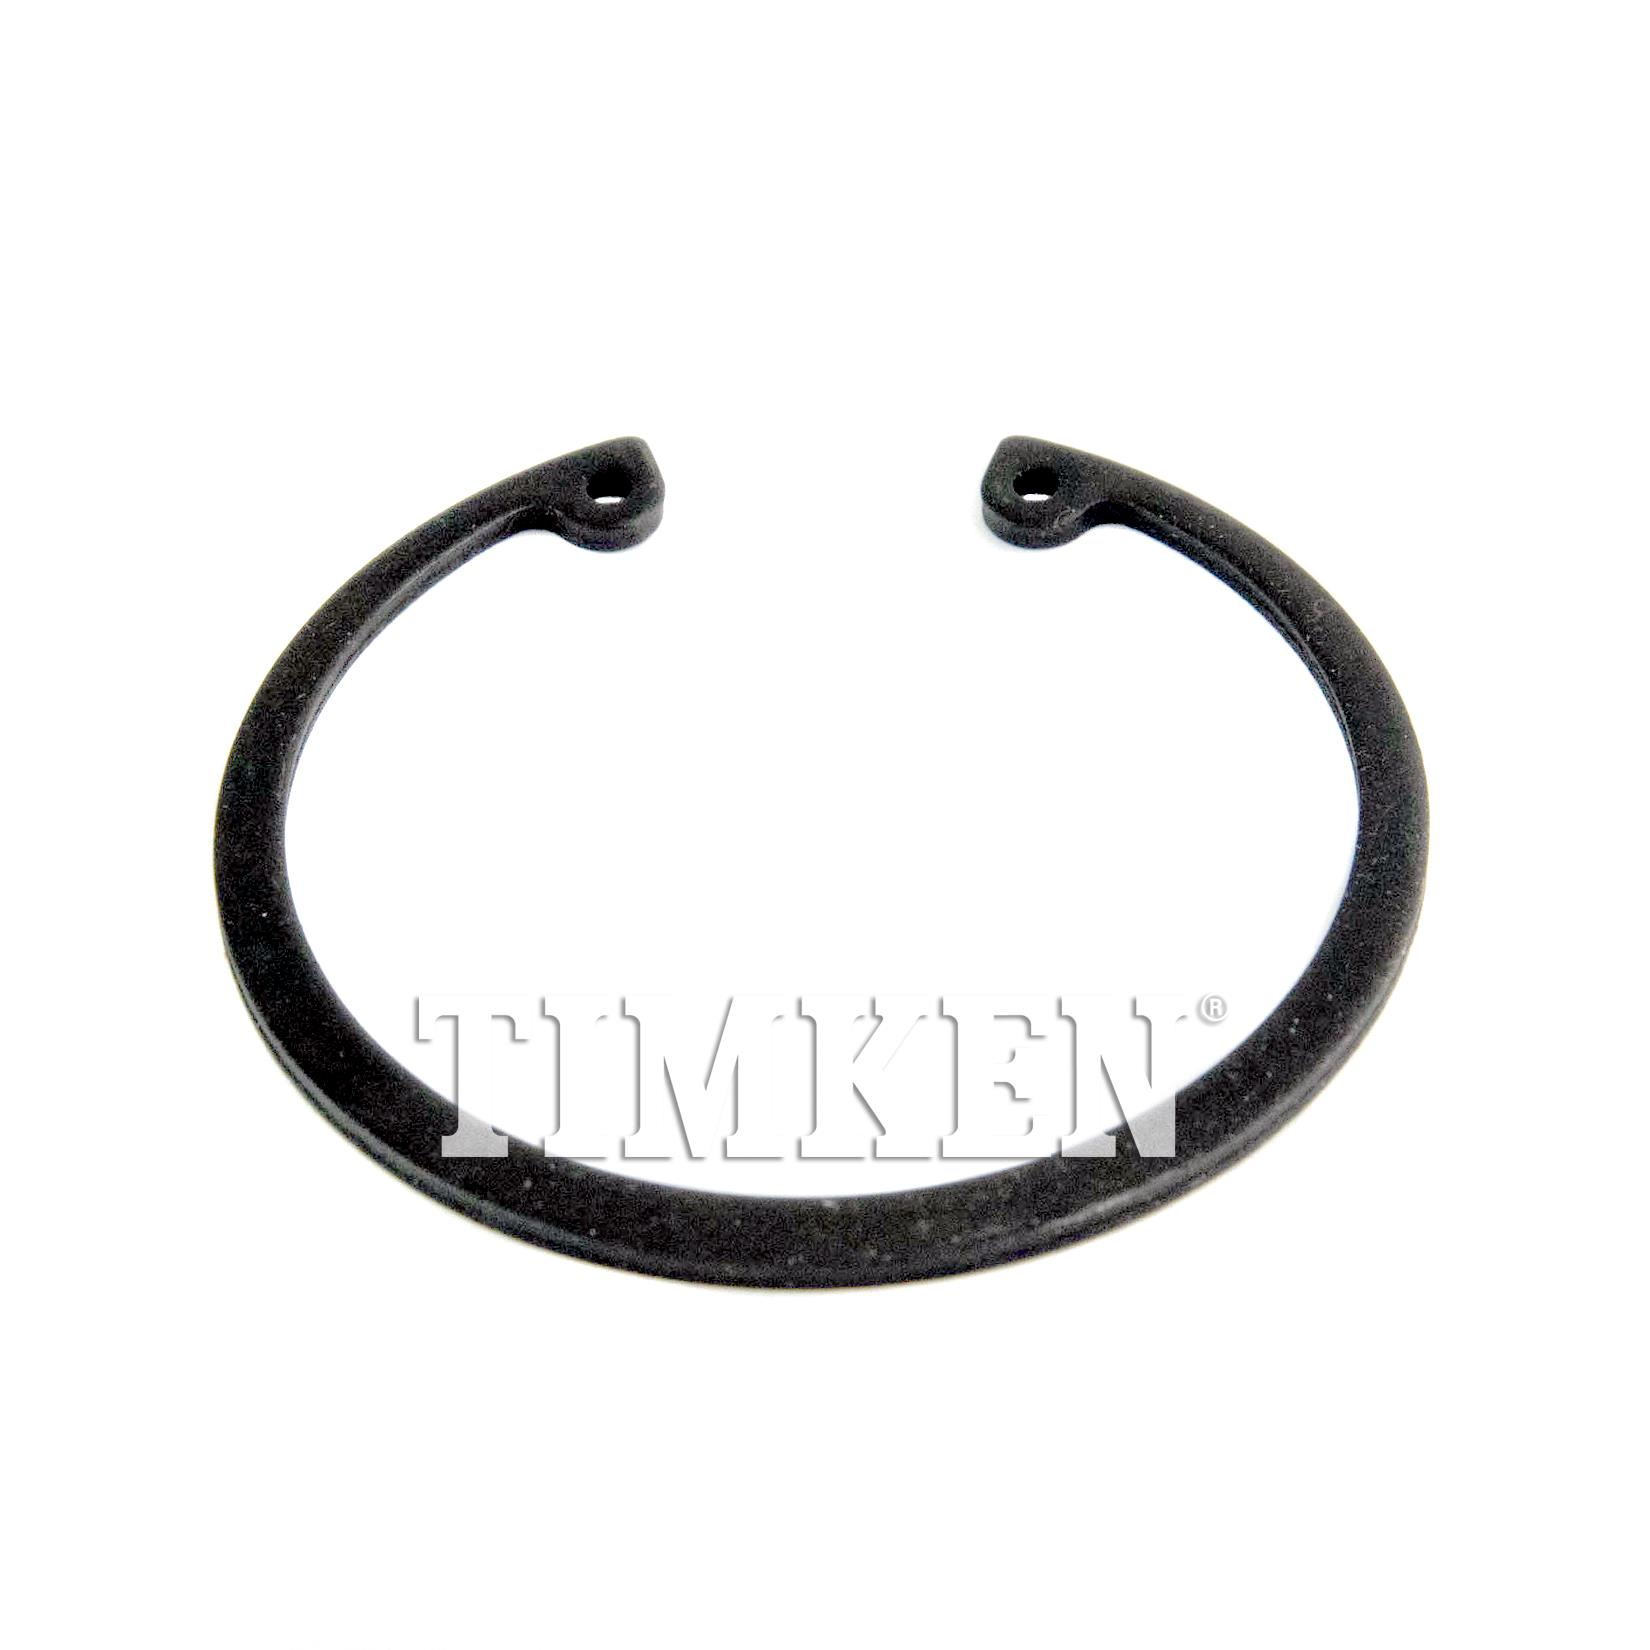 Wheel Bearing Retaining Ring